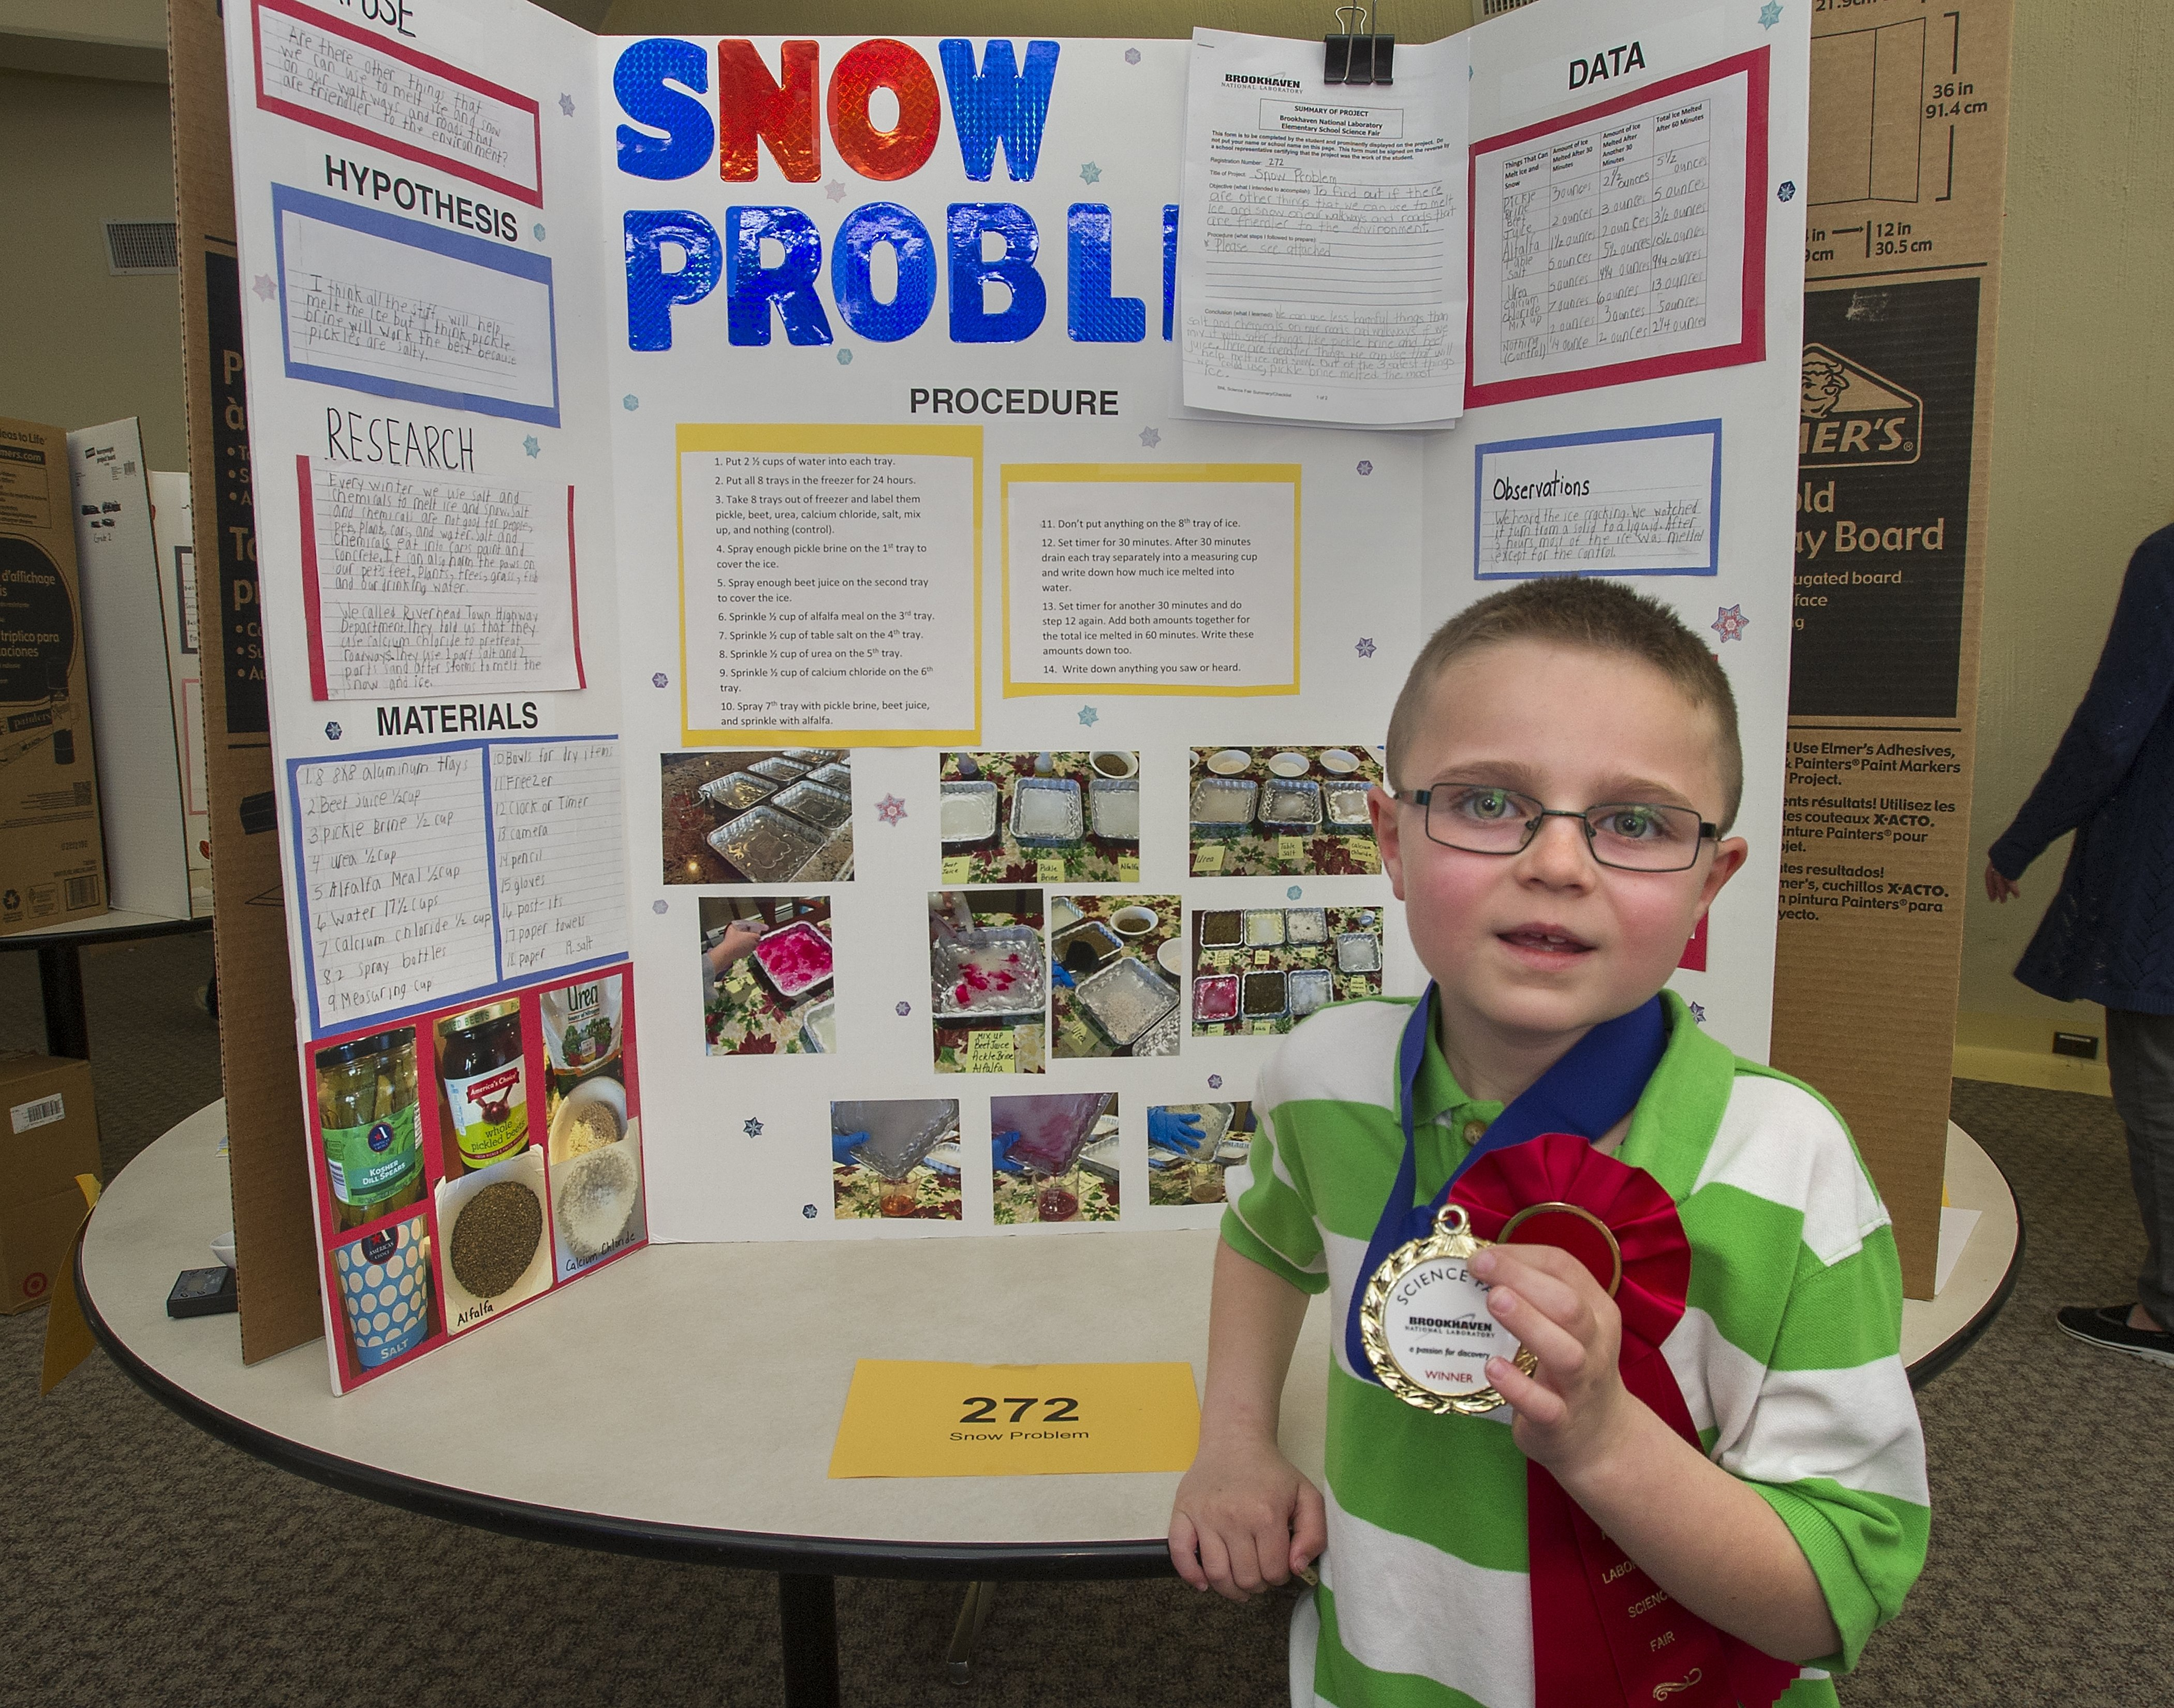 10 Elegant Science Fair Projects Ideas For 6Th Grade second grade science fair project ideas homeshealth 11